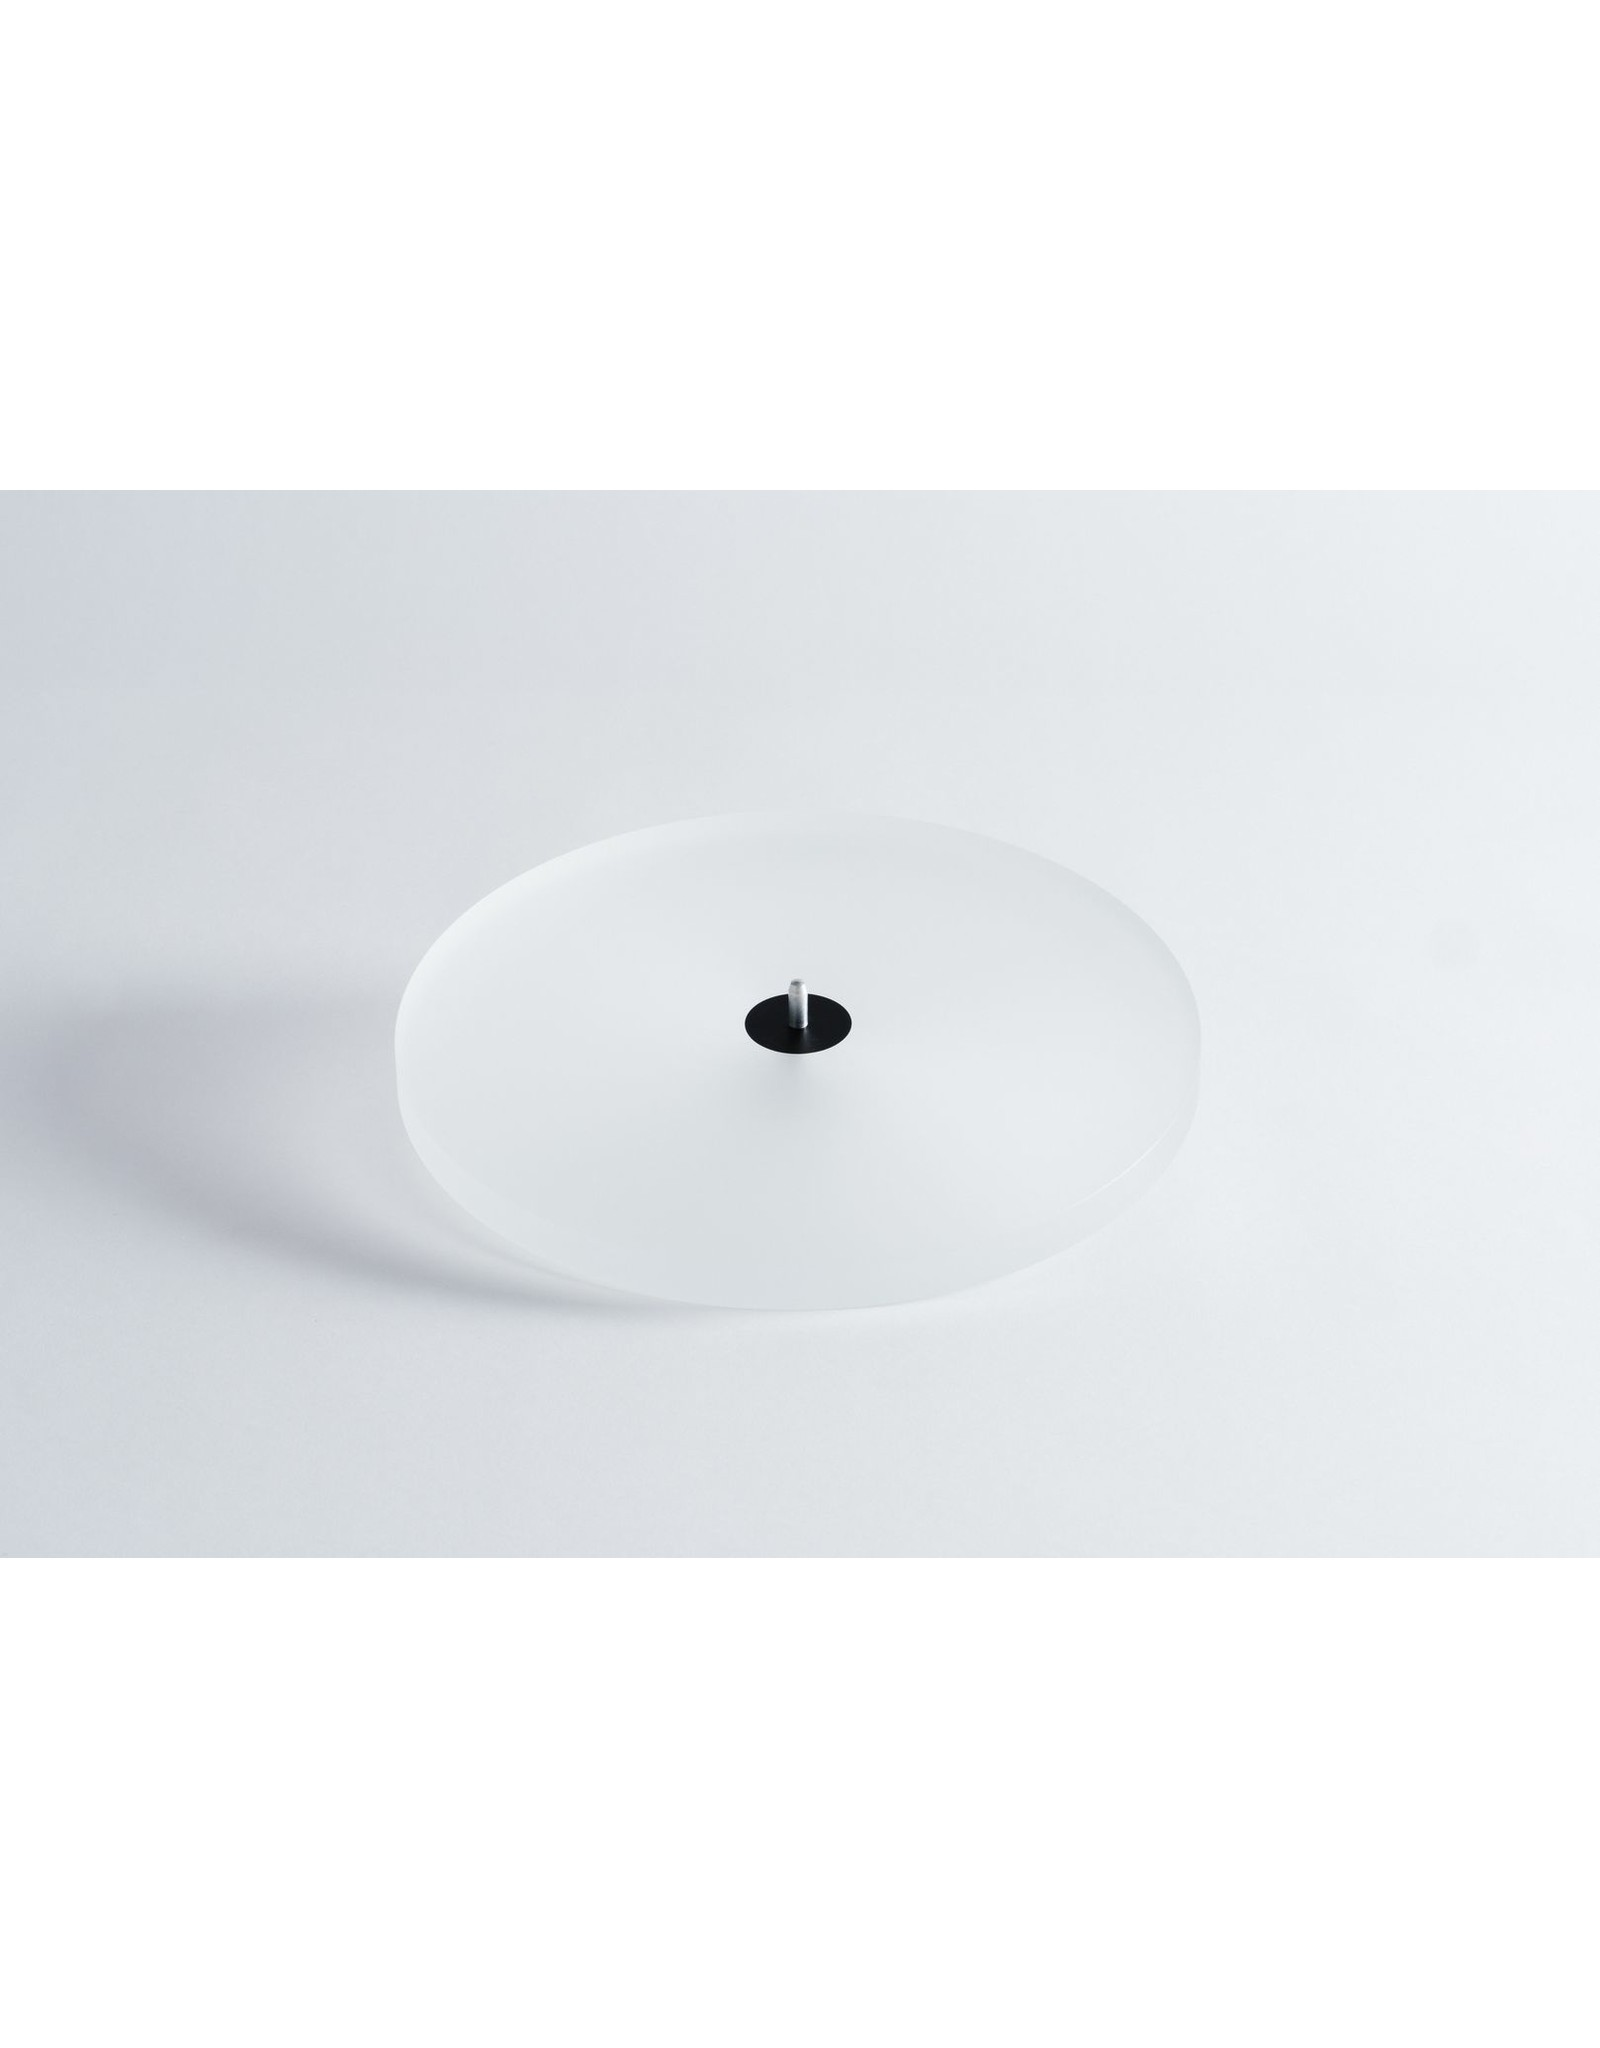 Pro-Ject Pro-Ject Acryl It E Platter Upgrade For Pro-Ject Essential, Elemental, Primary^